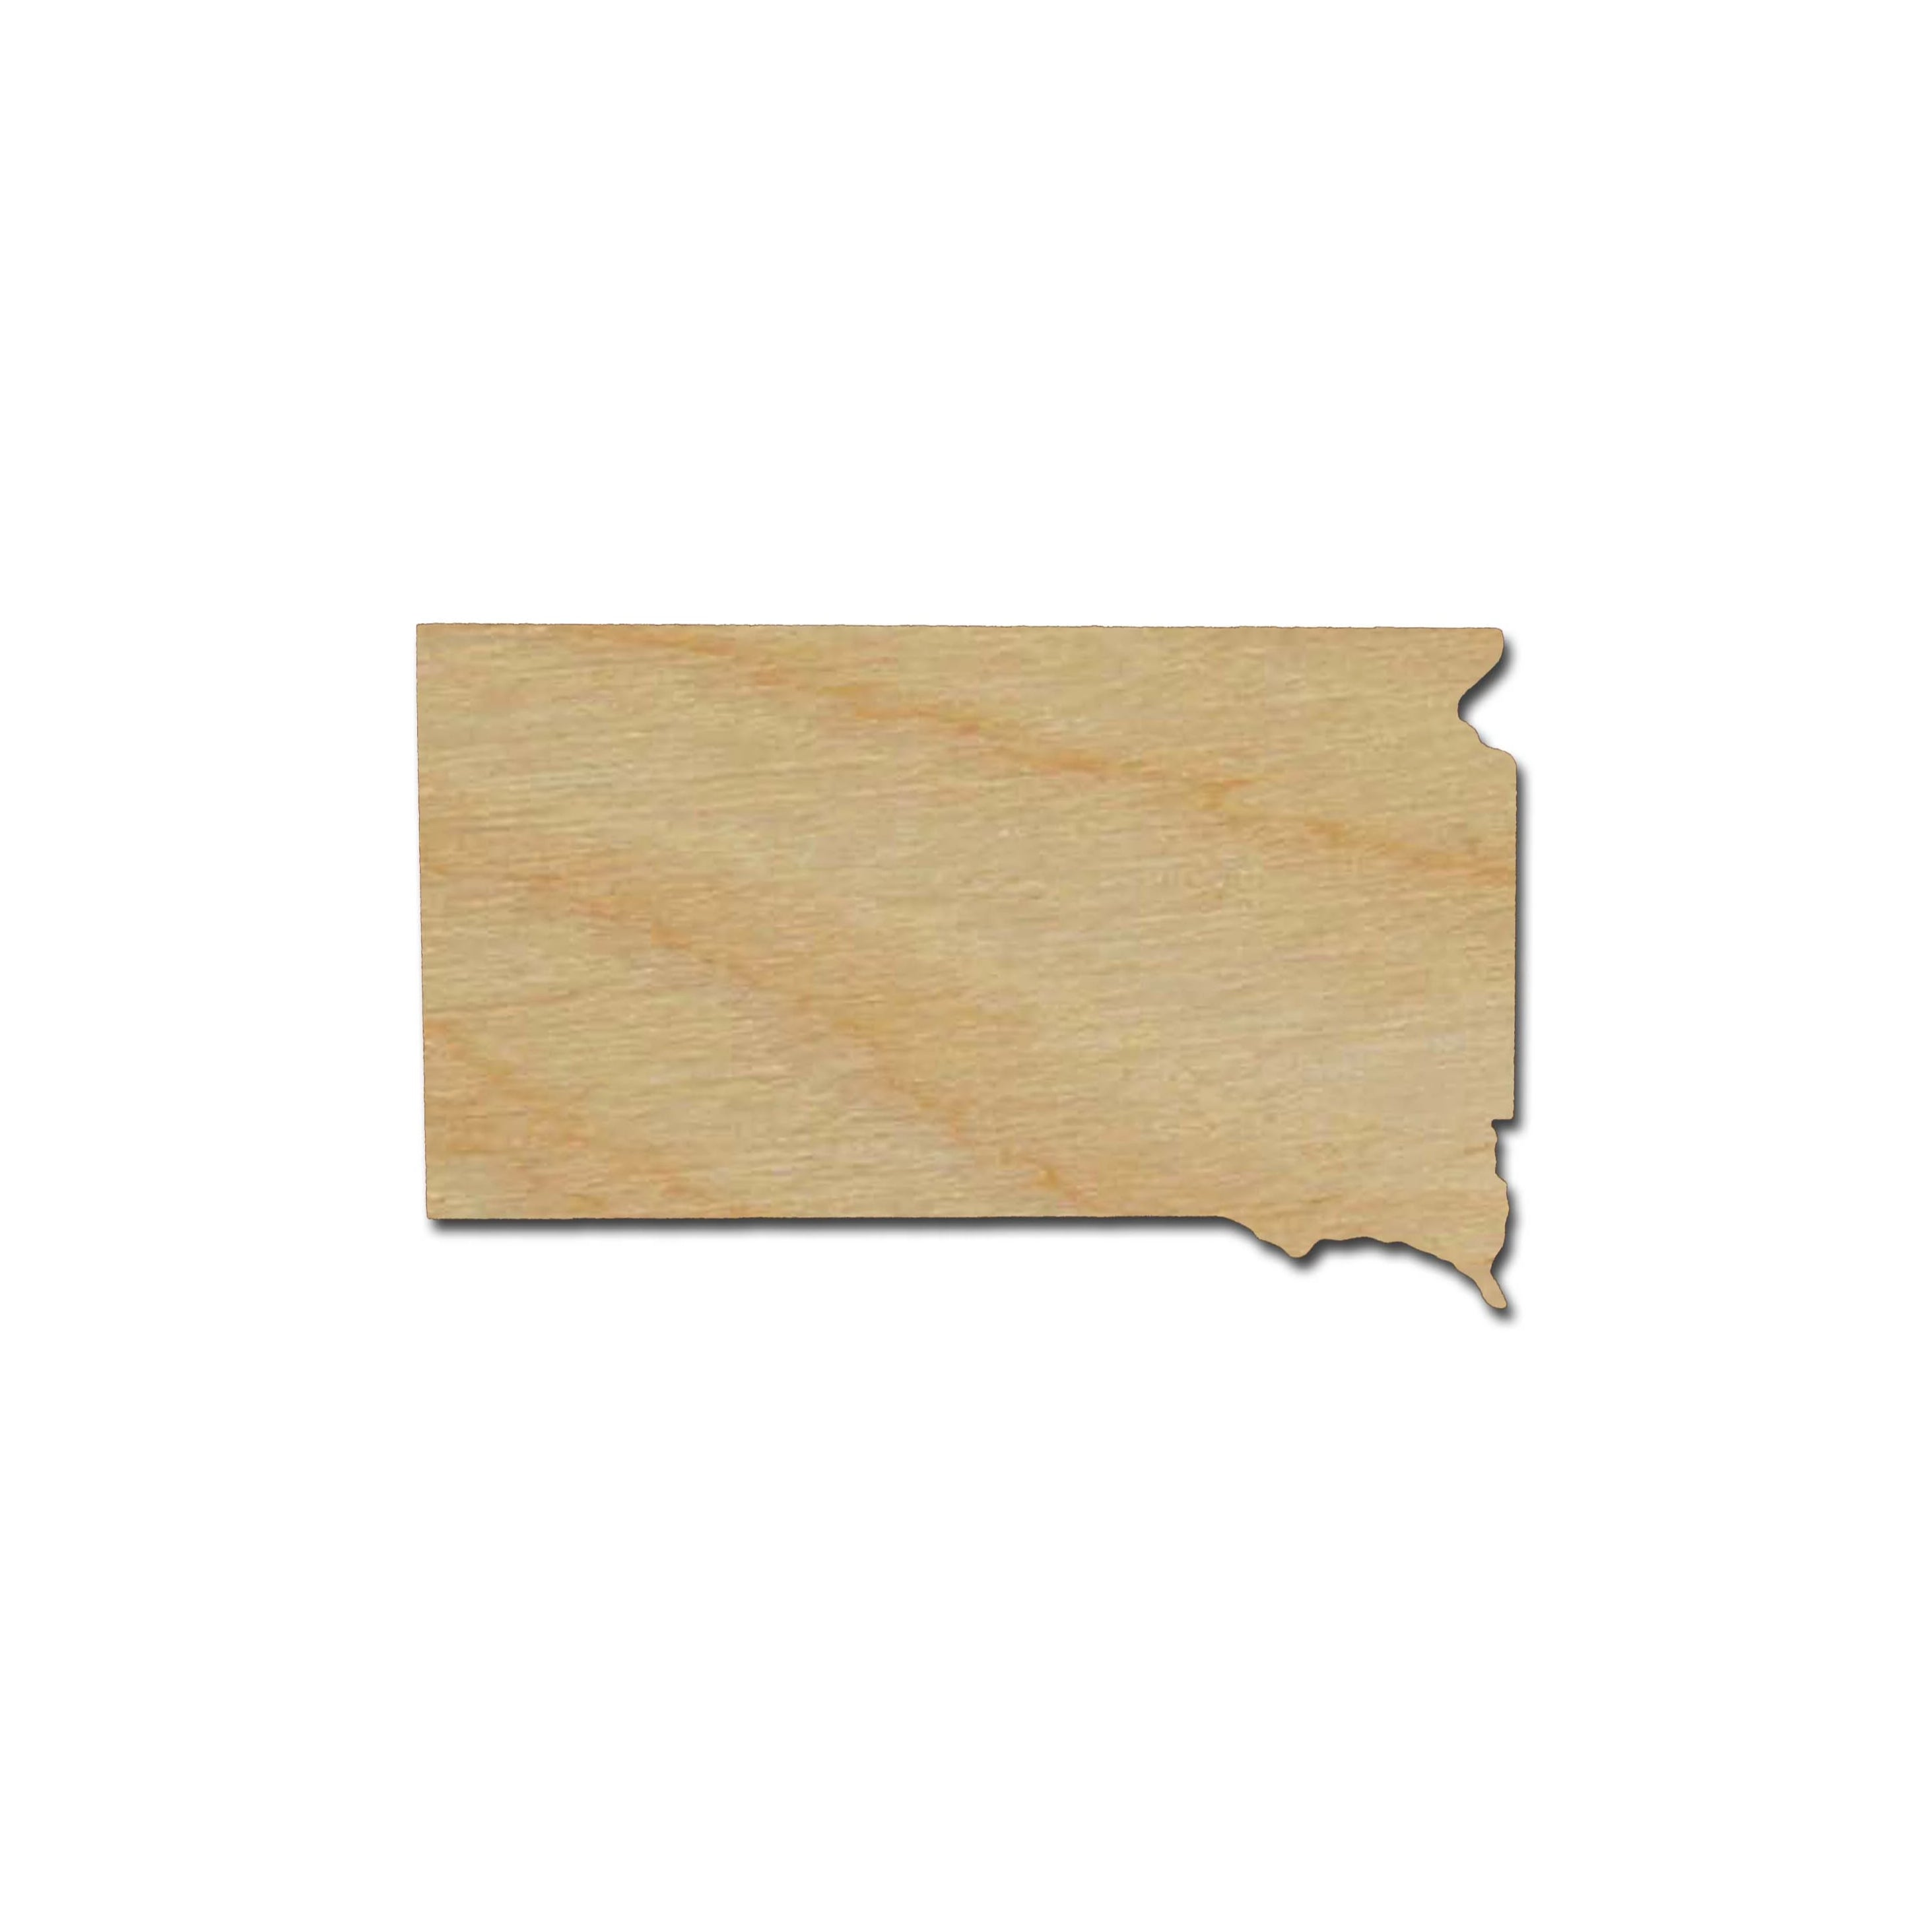 State Cutout Wood Shape Cut Out Unfinished Craft Supply State Shape Wyoming